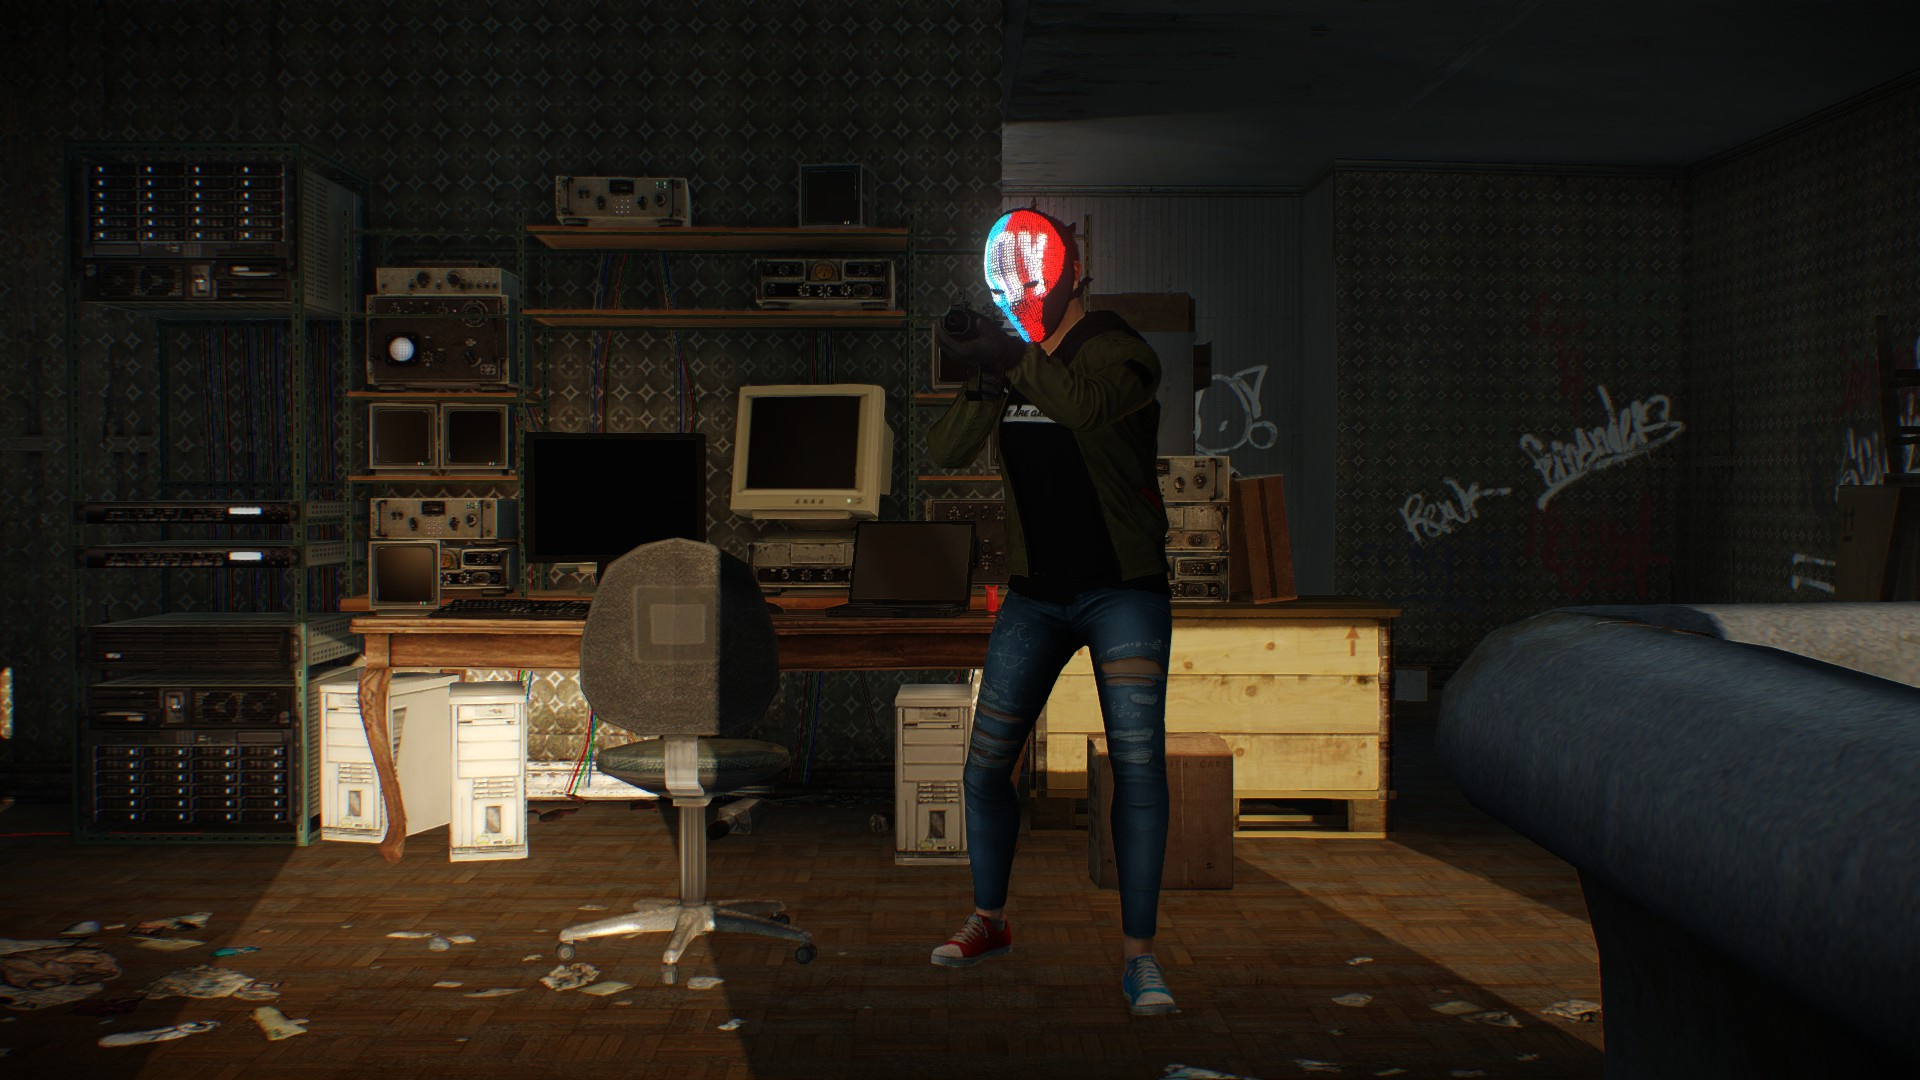 Review payday 2 switch gameup24 payday 2 switch screenshot joy 11 malvernweather Images